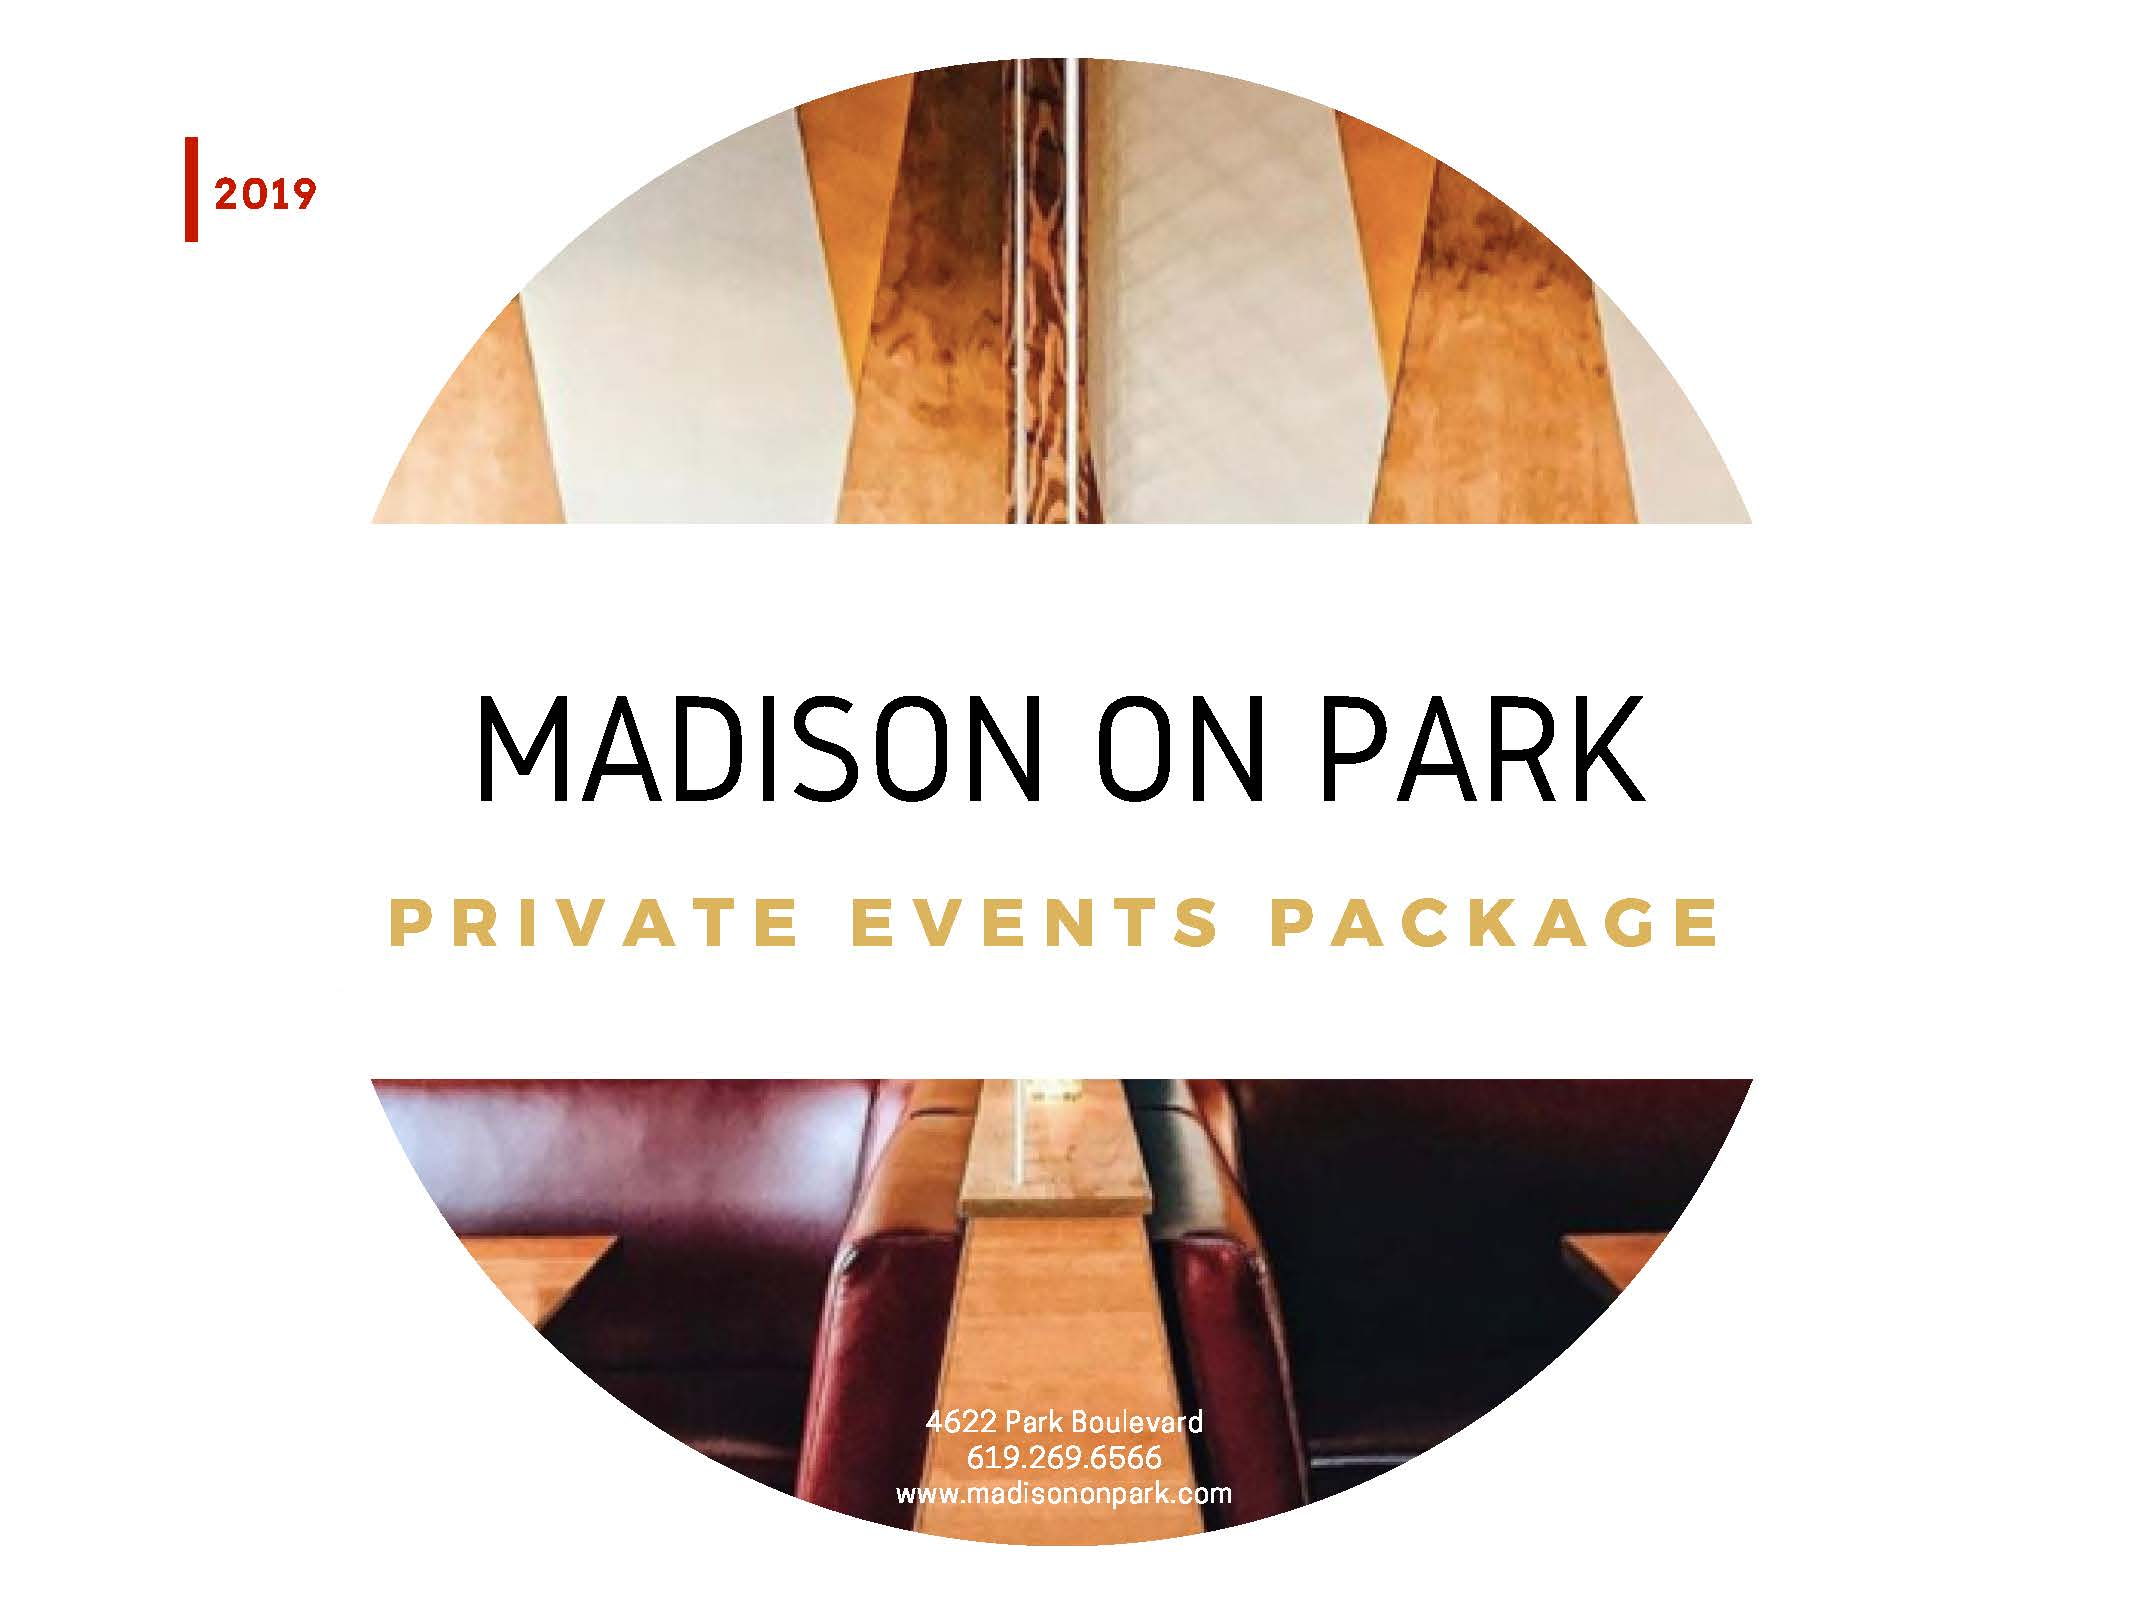 Madison on Park Events Menu 2019_Page_1.jpg